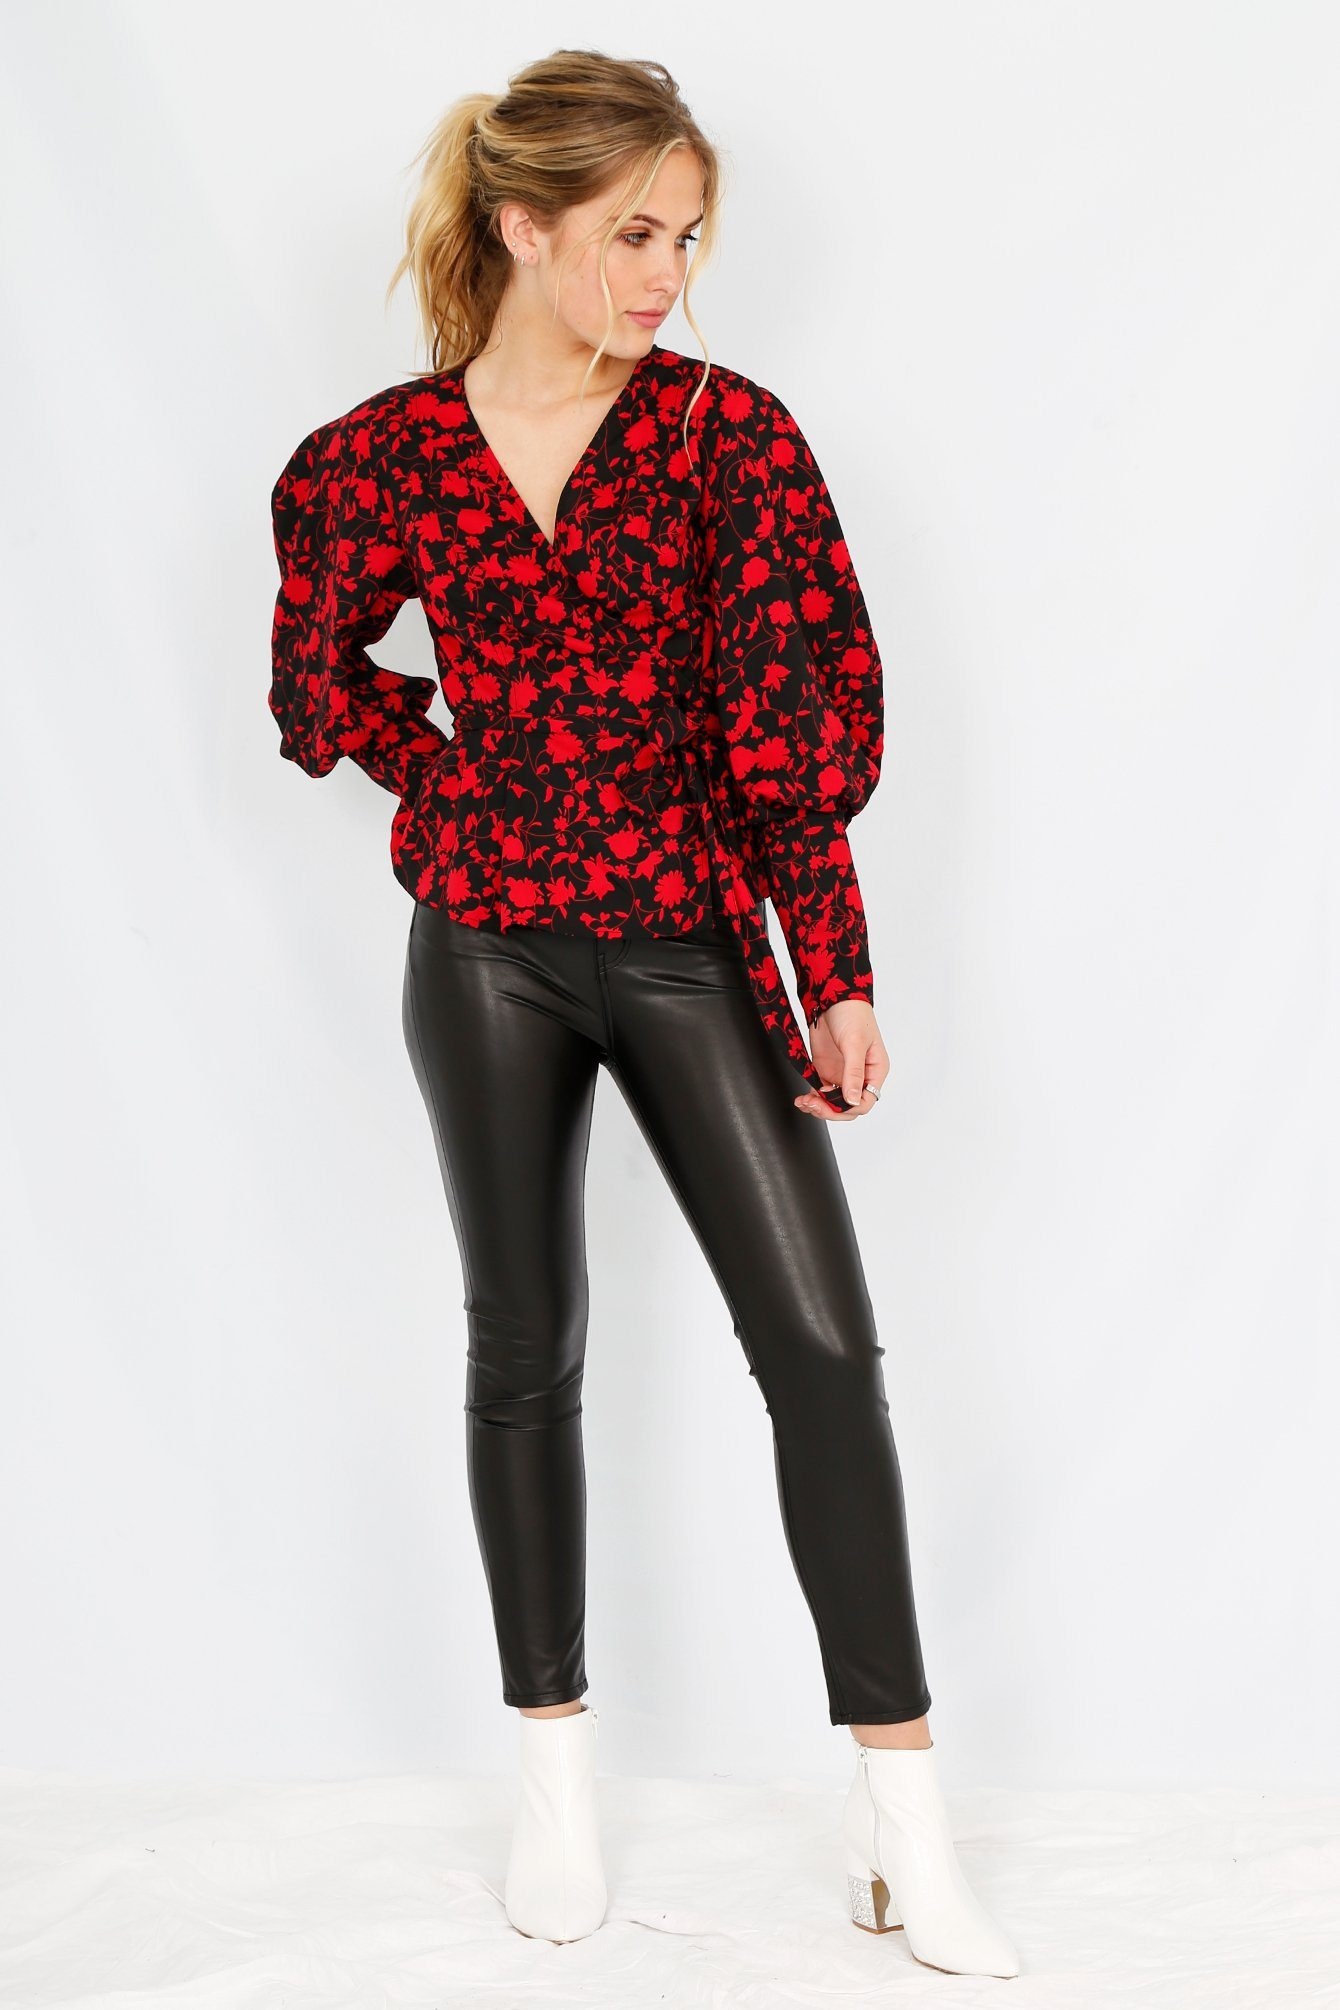 C/MEO | Opacity Top - Black + Chili Floral